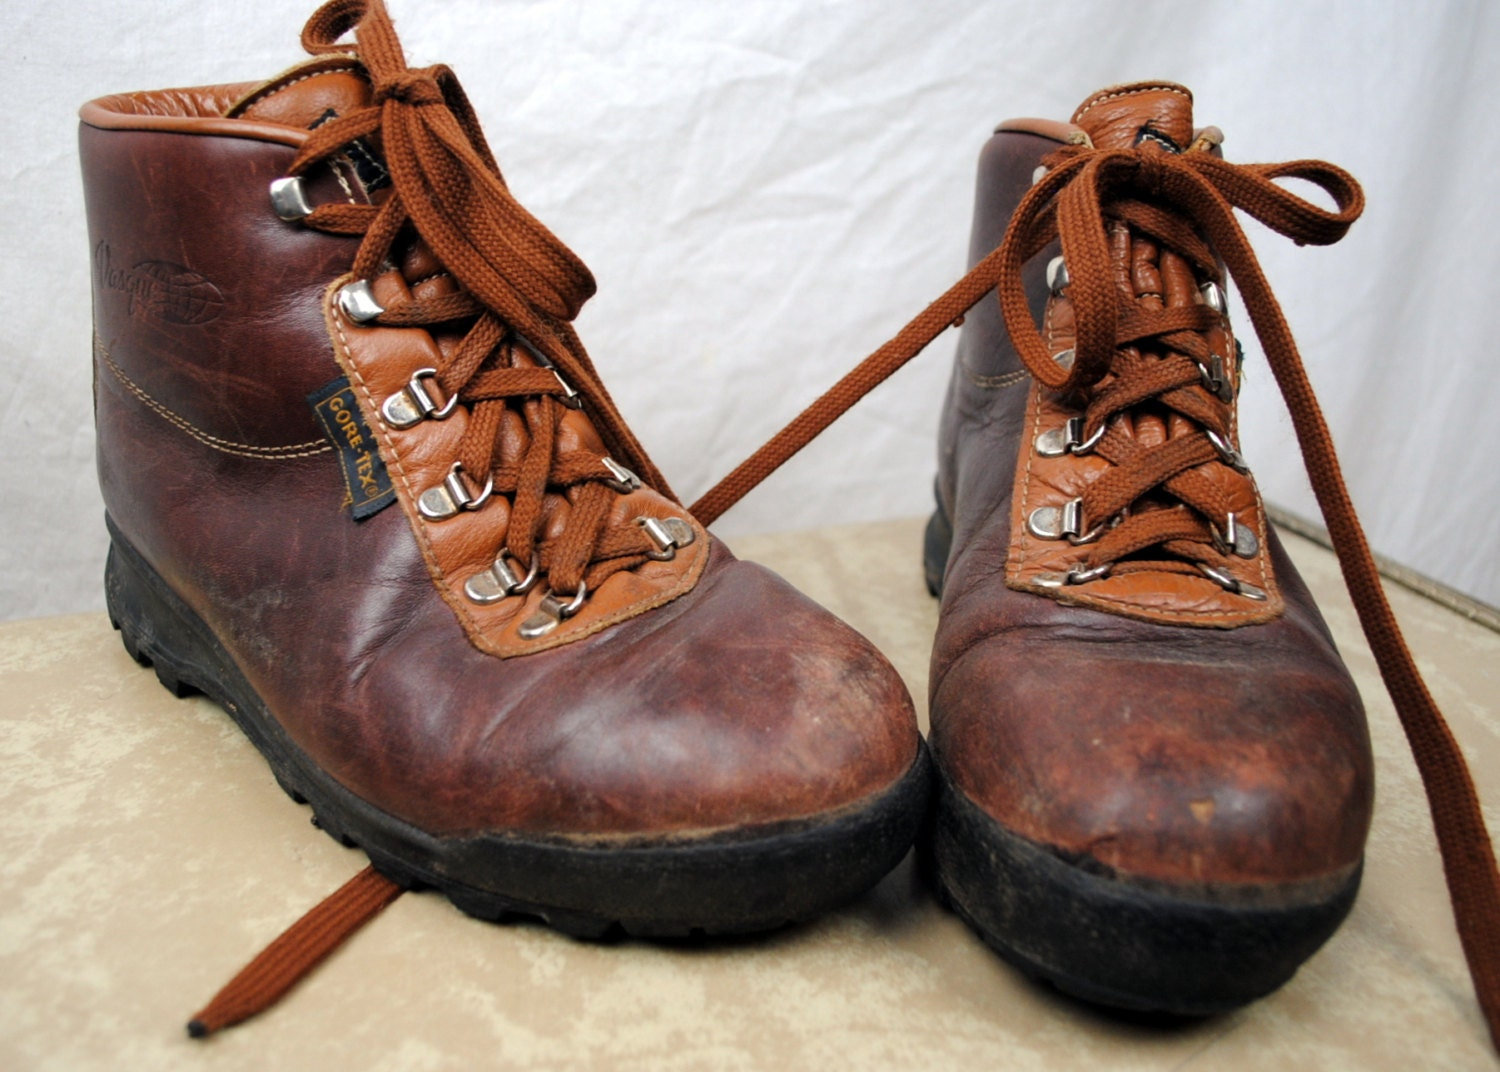 vintage vasque hiking boots made in italy by rogueretro on etsy. Black Bedroom Furniture Sets. Home Design Ideas